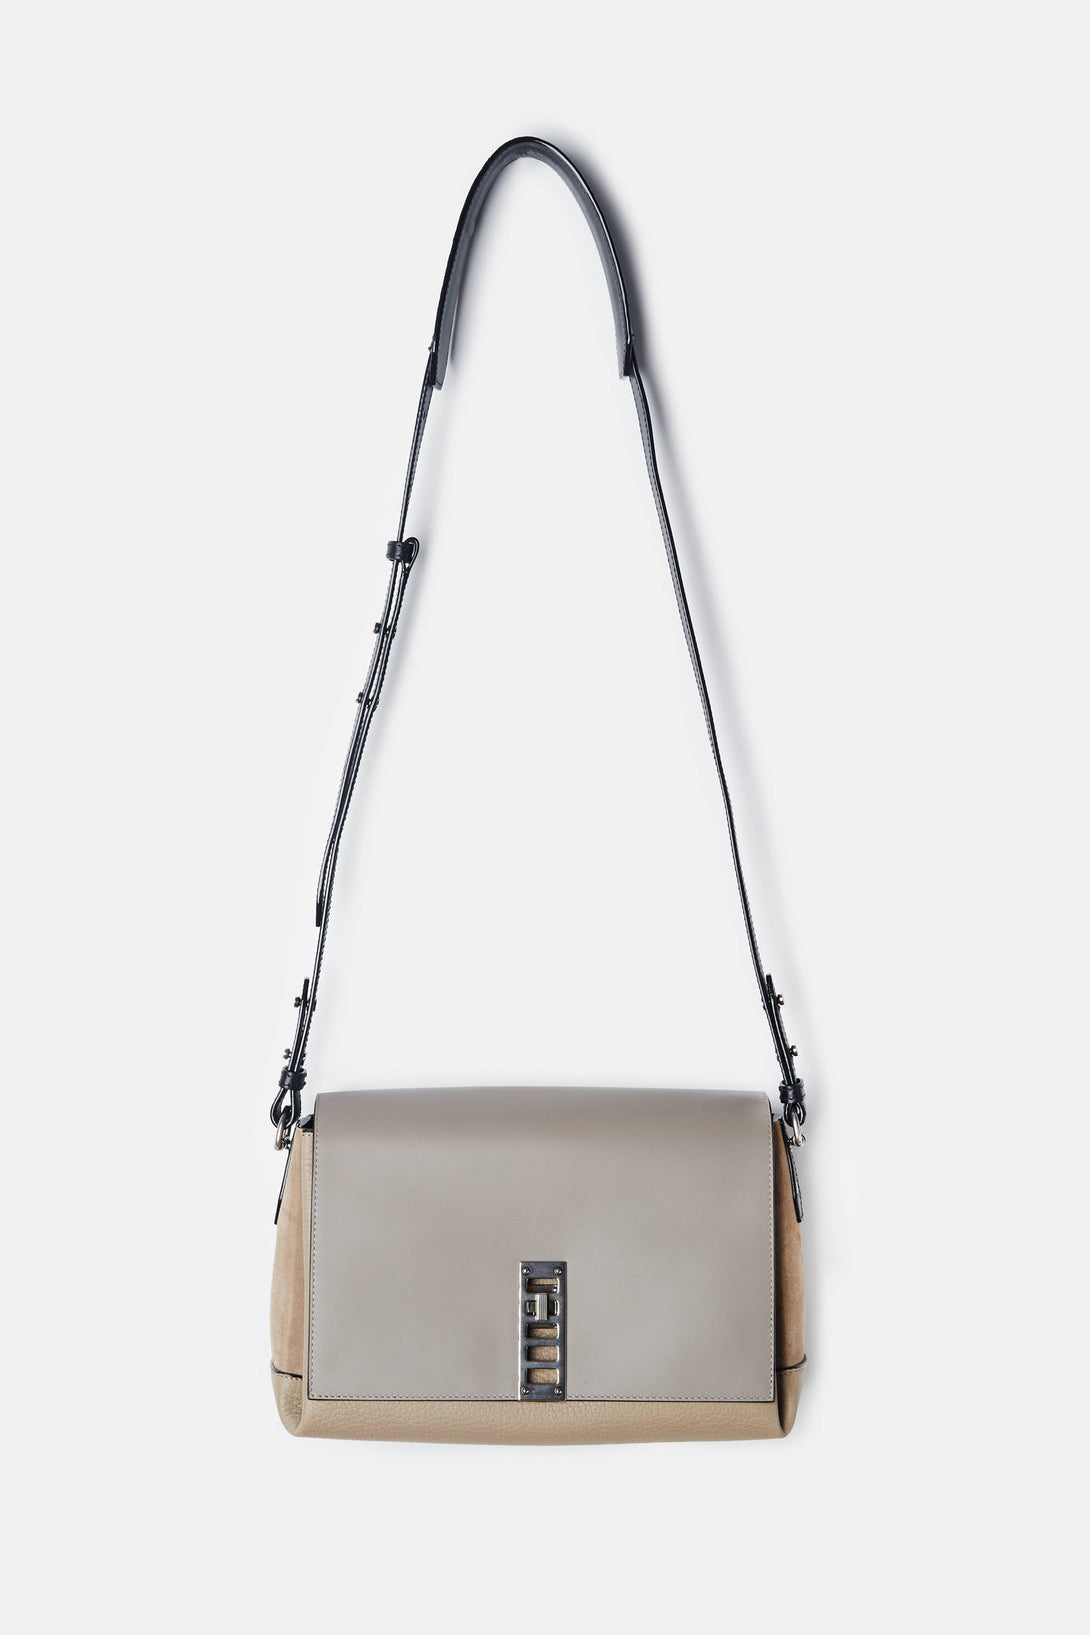 PS Elliot Crossbody - Dark Sand/Black